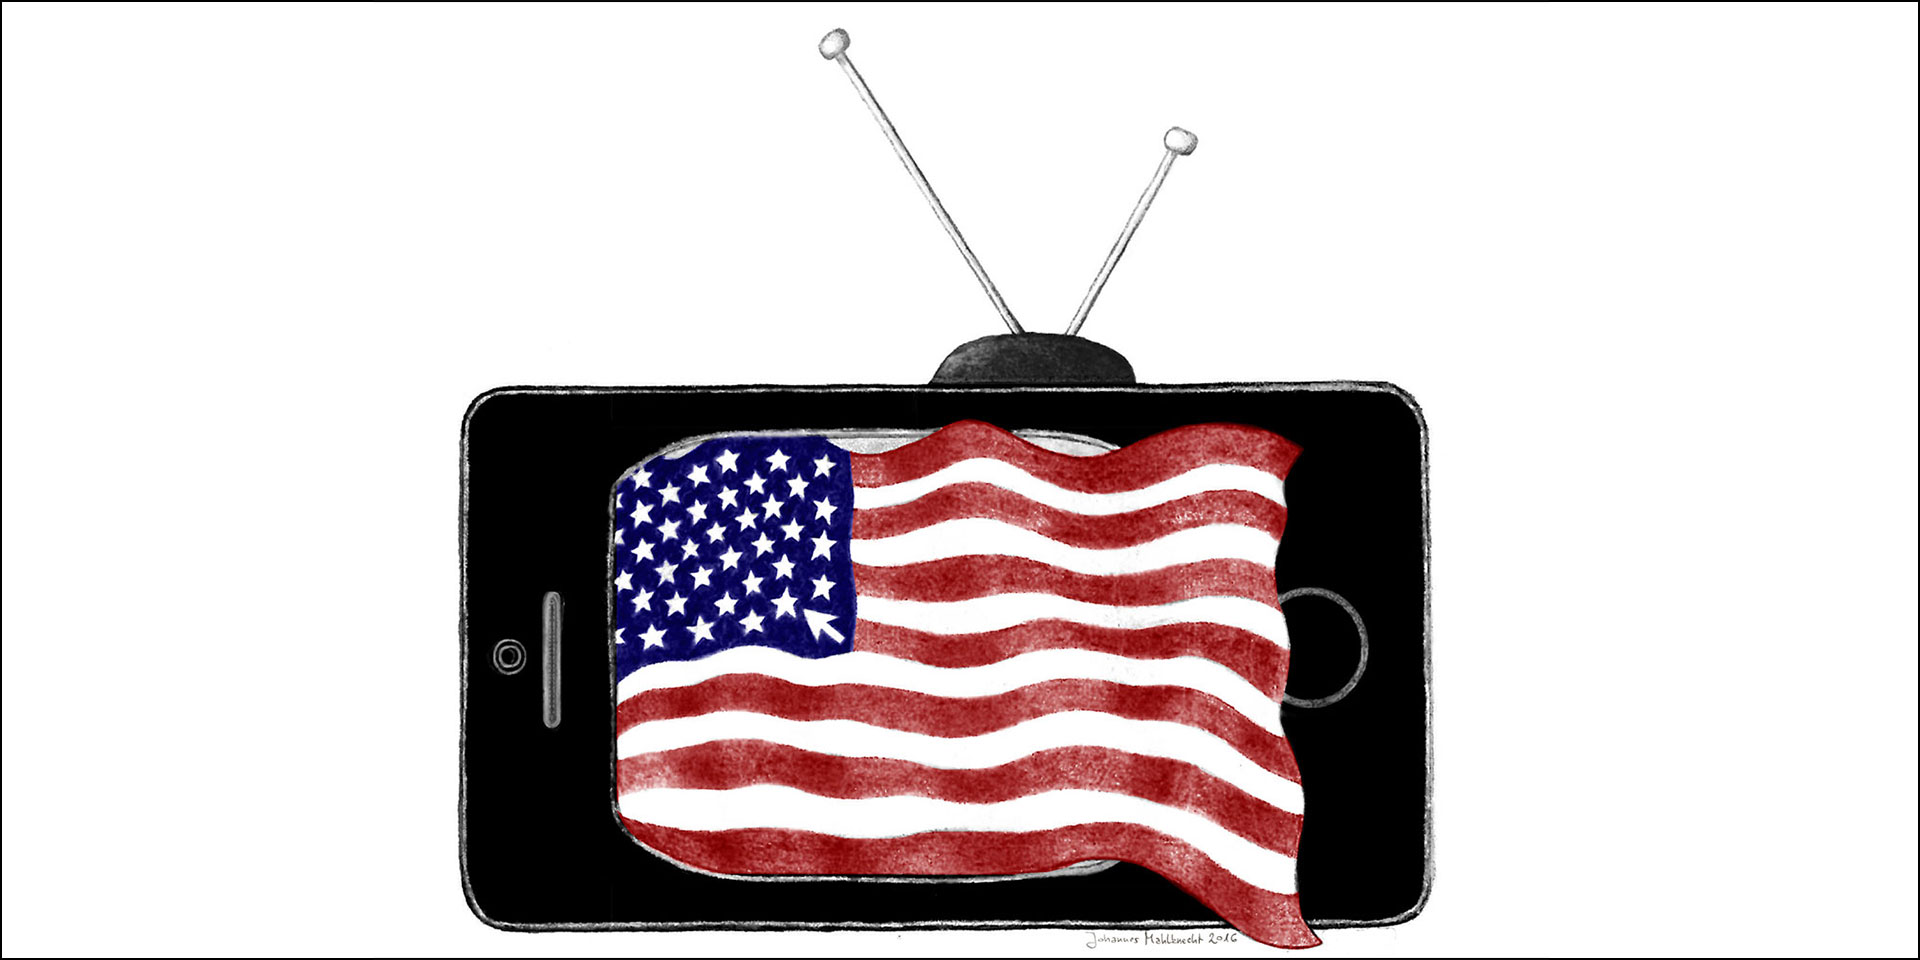 America Through the Small Screen